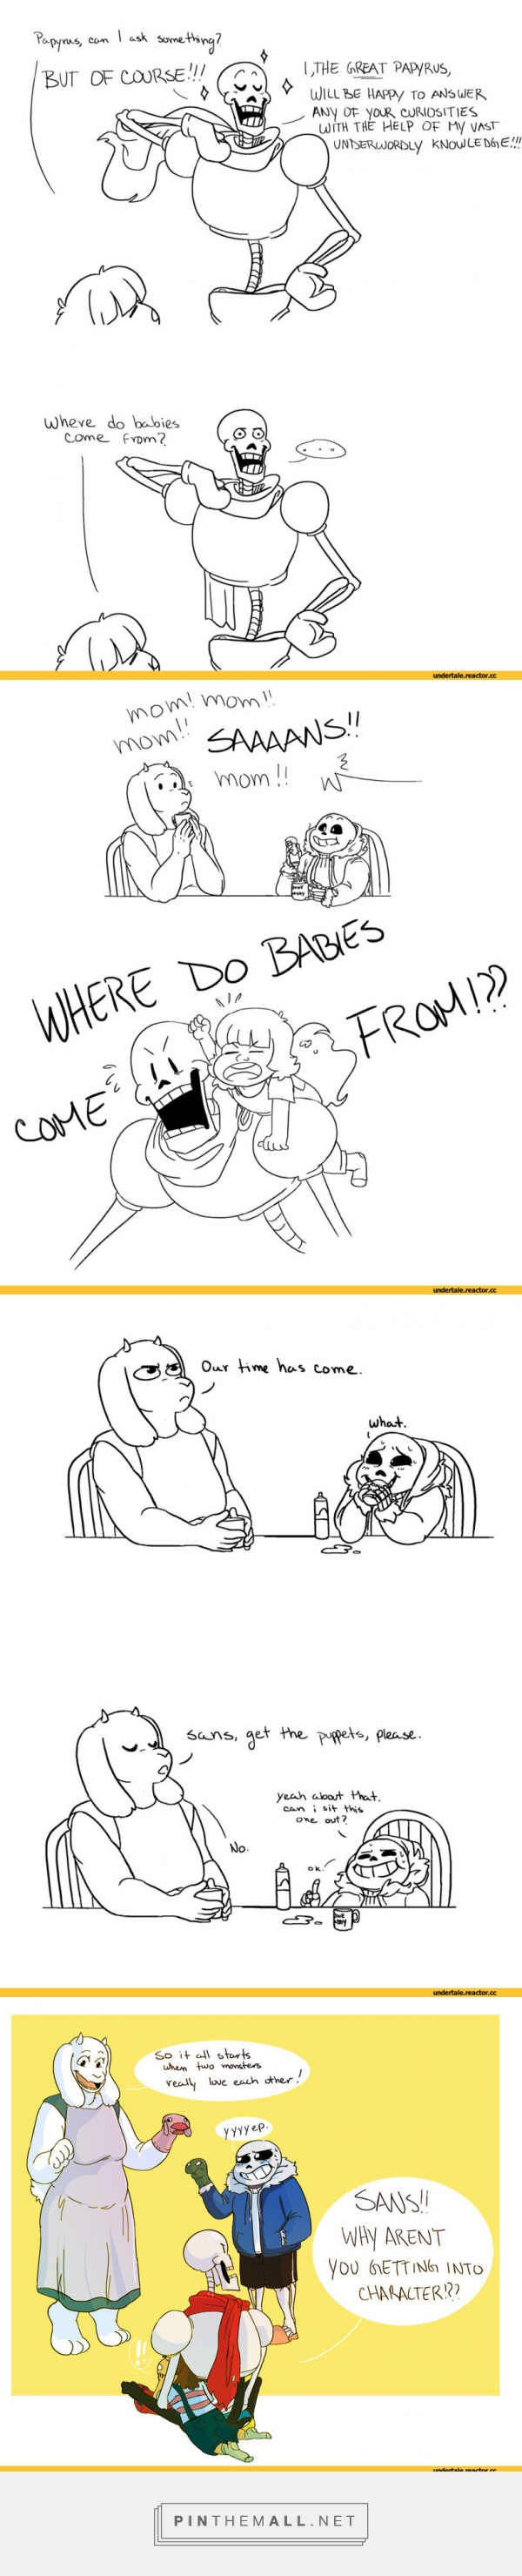 Undertale, Frisk, Toriel, Papyrus, Sans - created via https://pinthemall.net